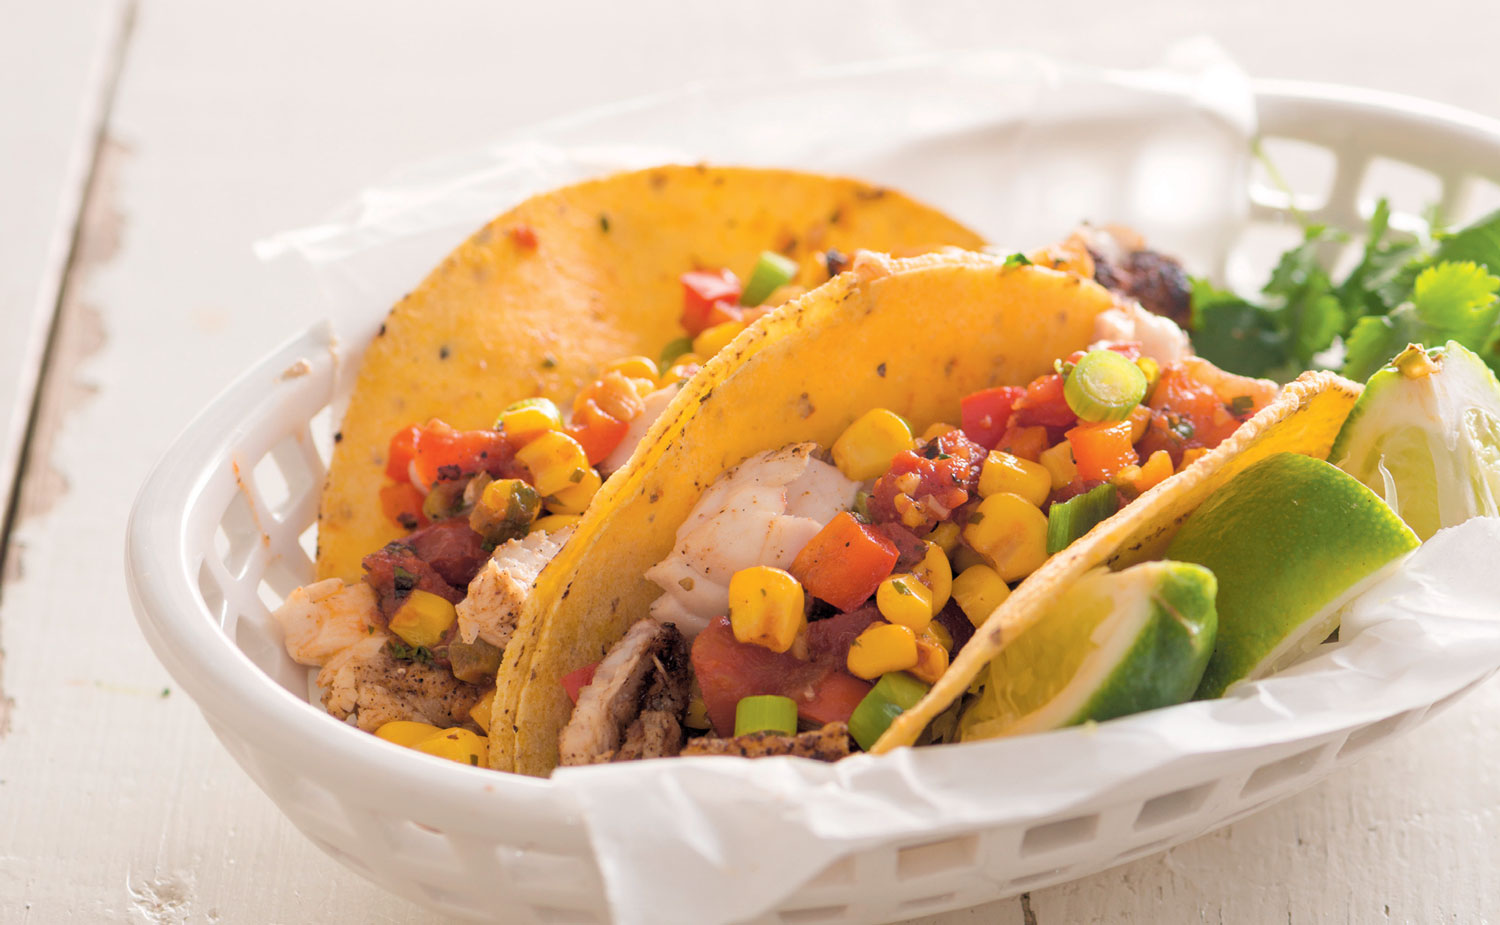 Fish tacos with corn relish for Taco bell fish tacos